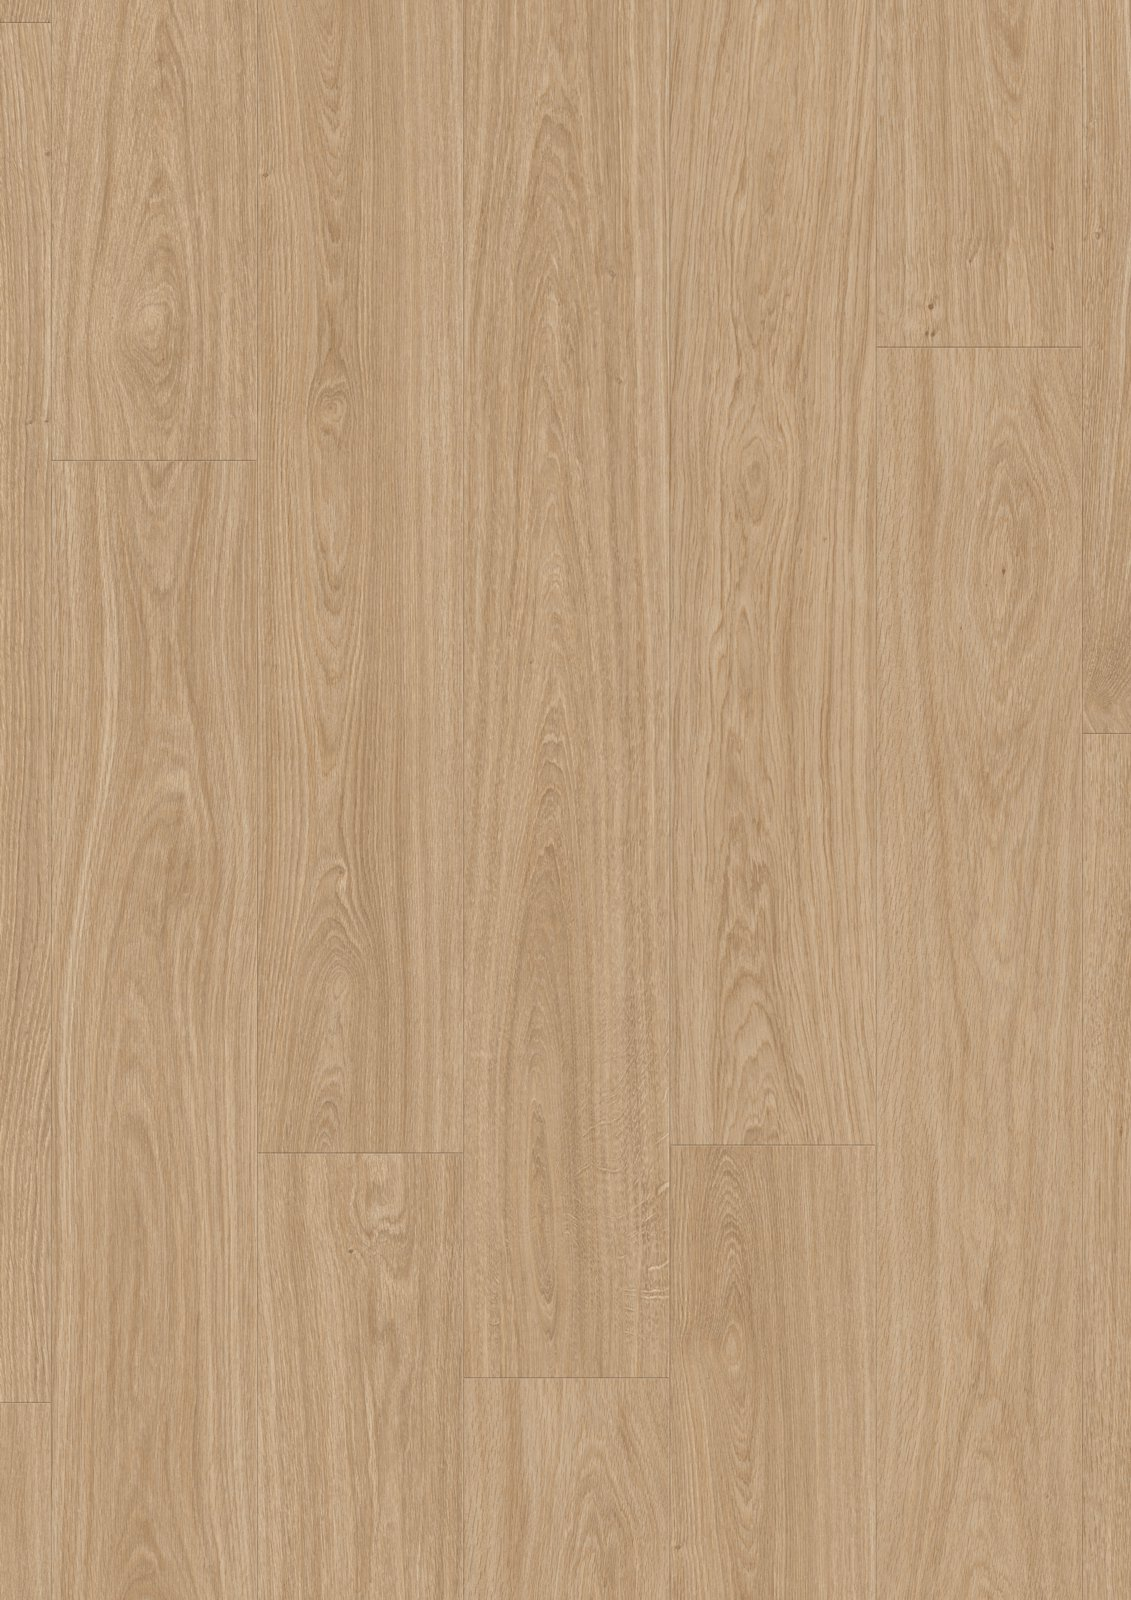 Vinyyli Pergo Optimum 1251x187x4,5 mm Light Nature Tammi lauta 4V